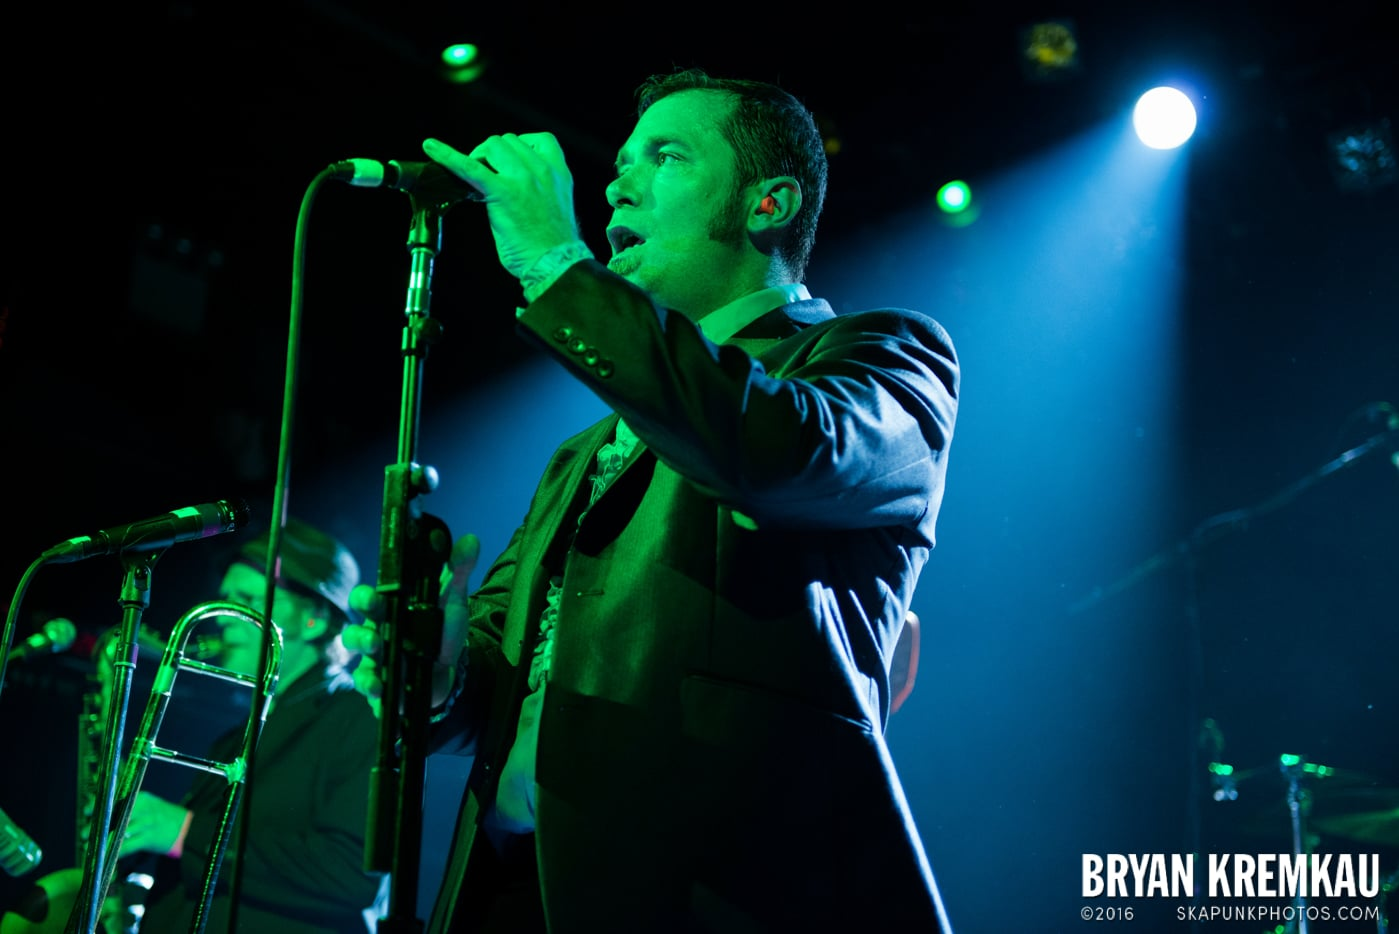 The Slackers @ Apple Stomp: Day 2, Irving Plaza, NYC - June 1st 2013 - Bryan Kremkau (28)